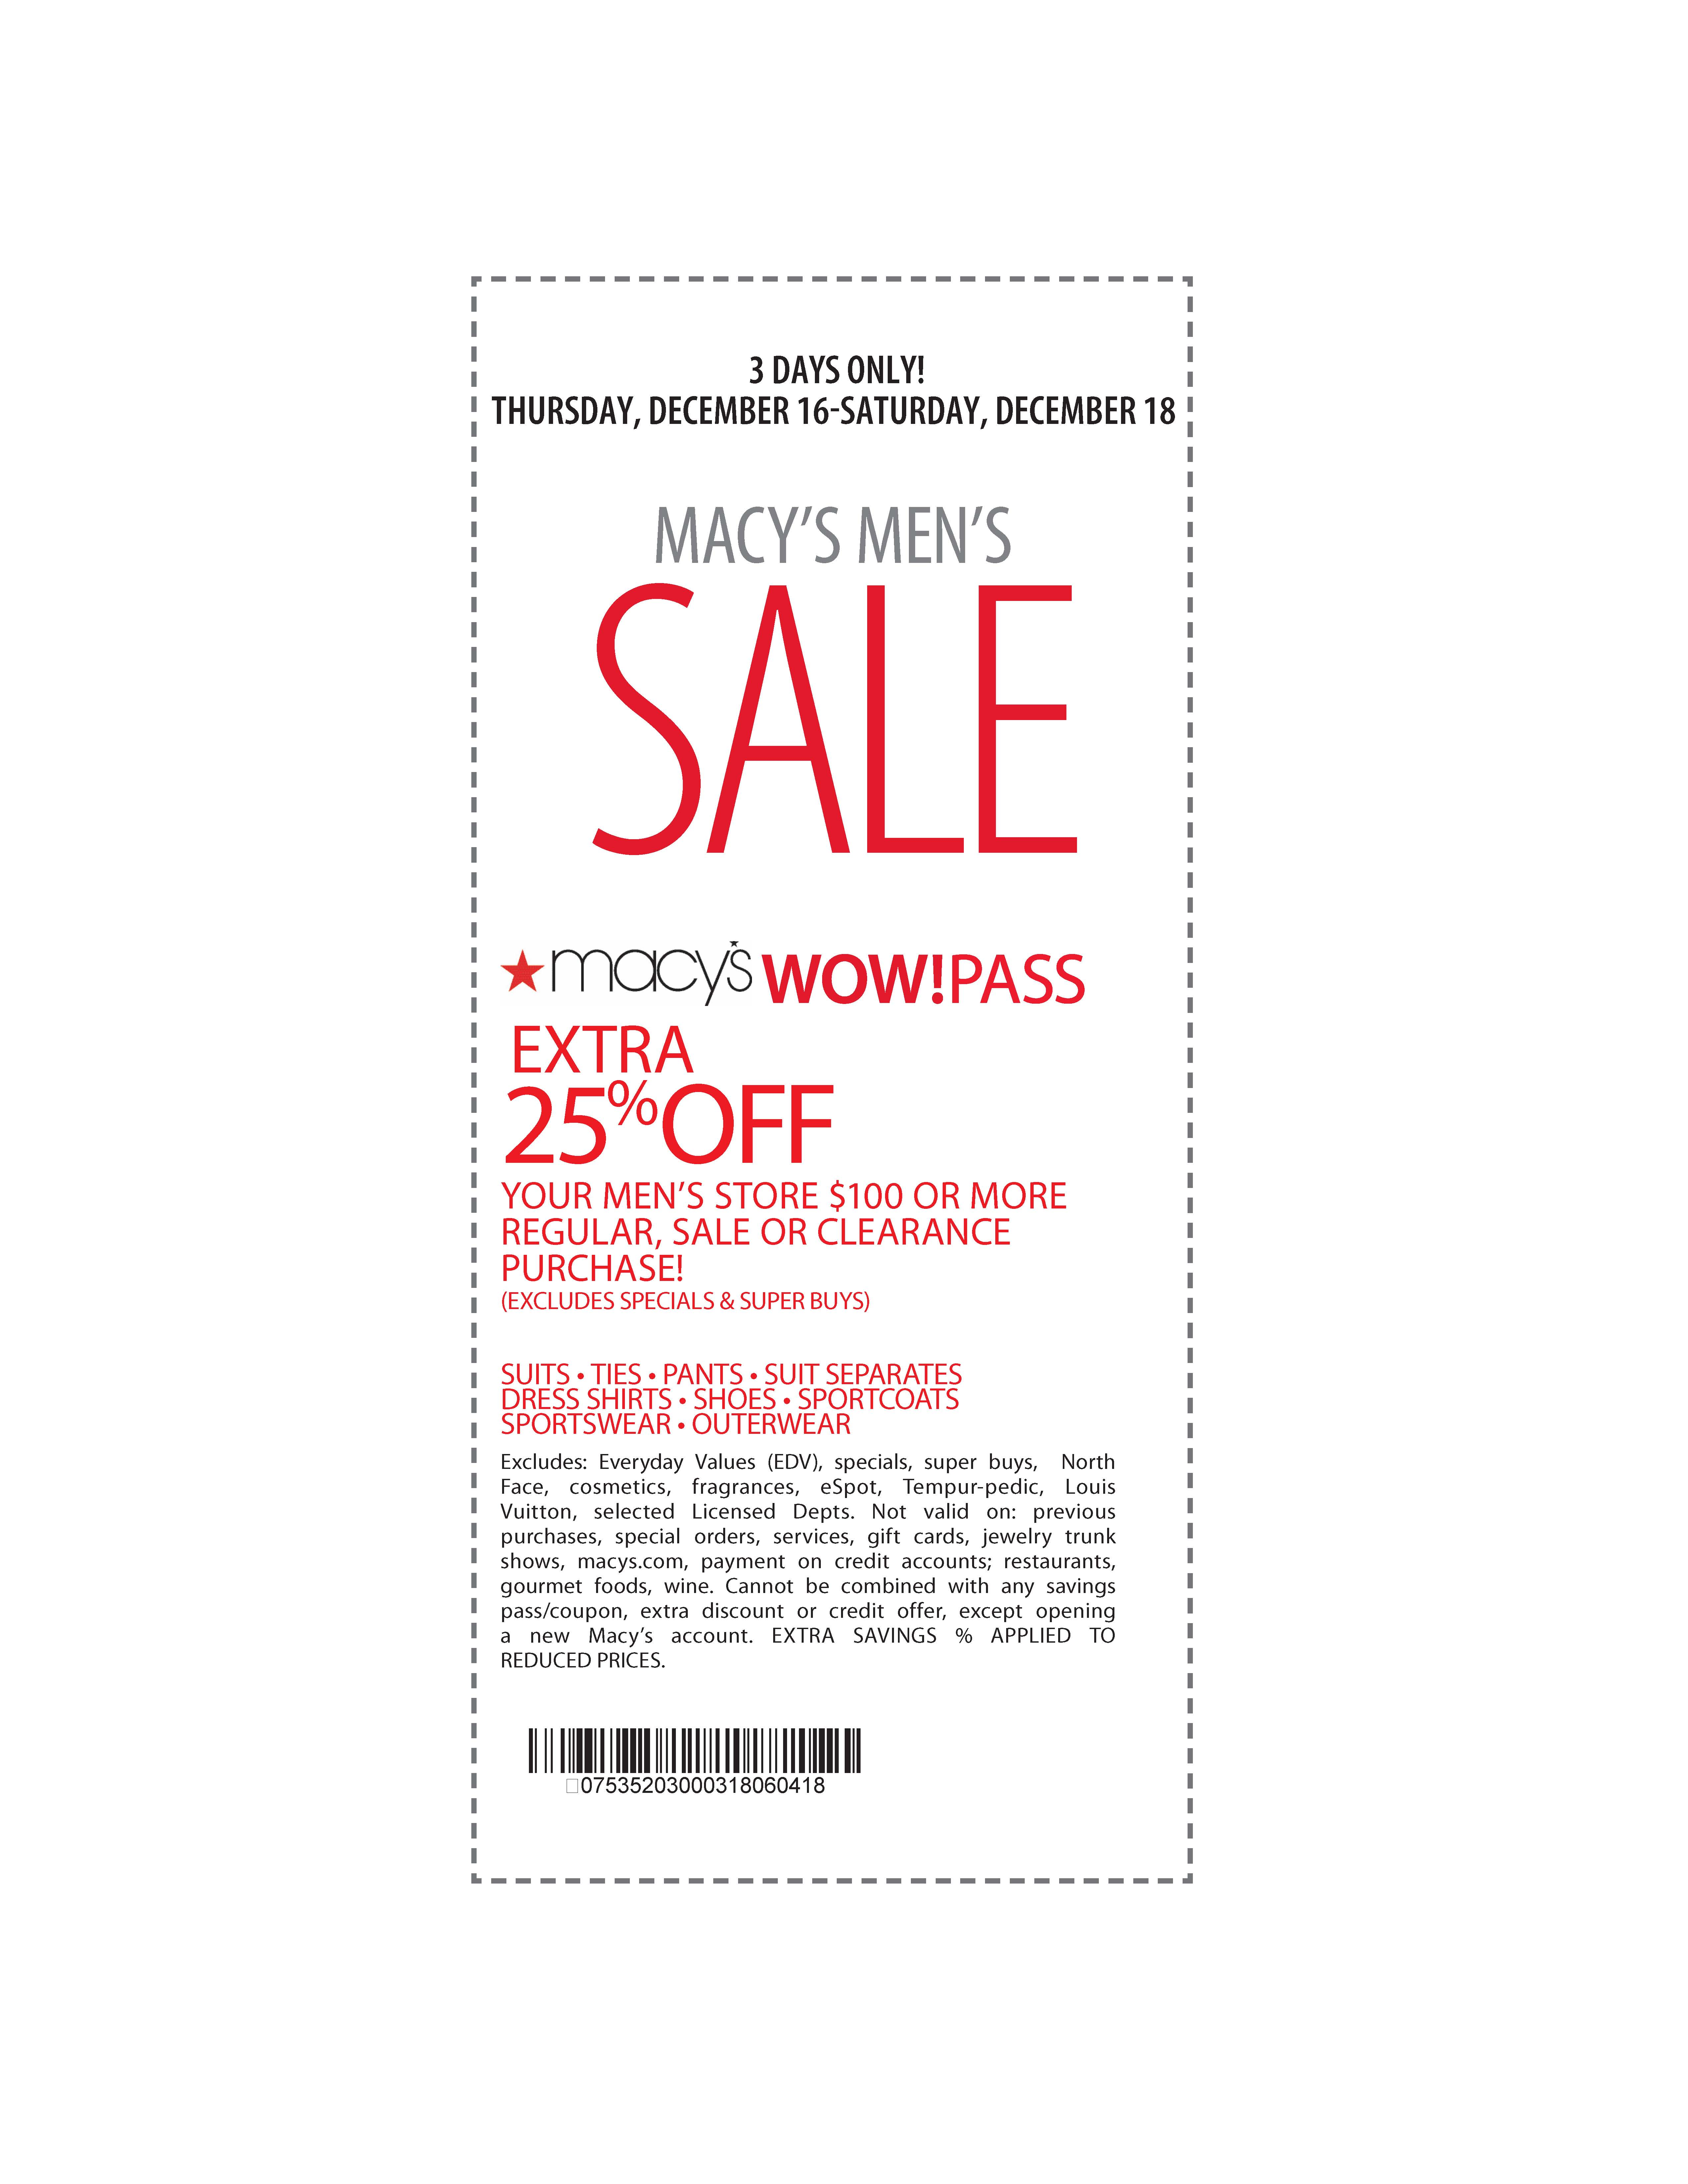 2016 get new printable Macy's Coupons